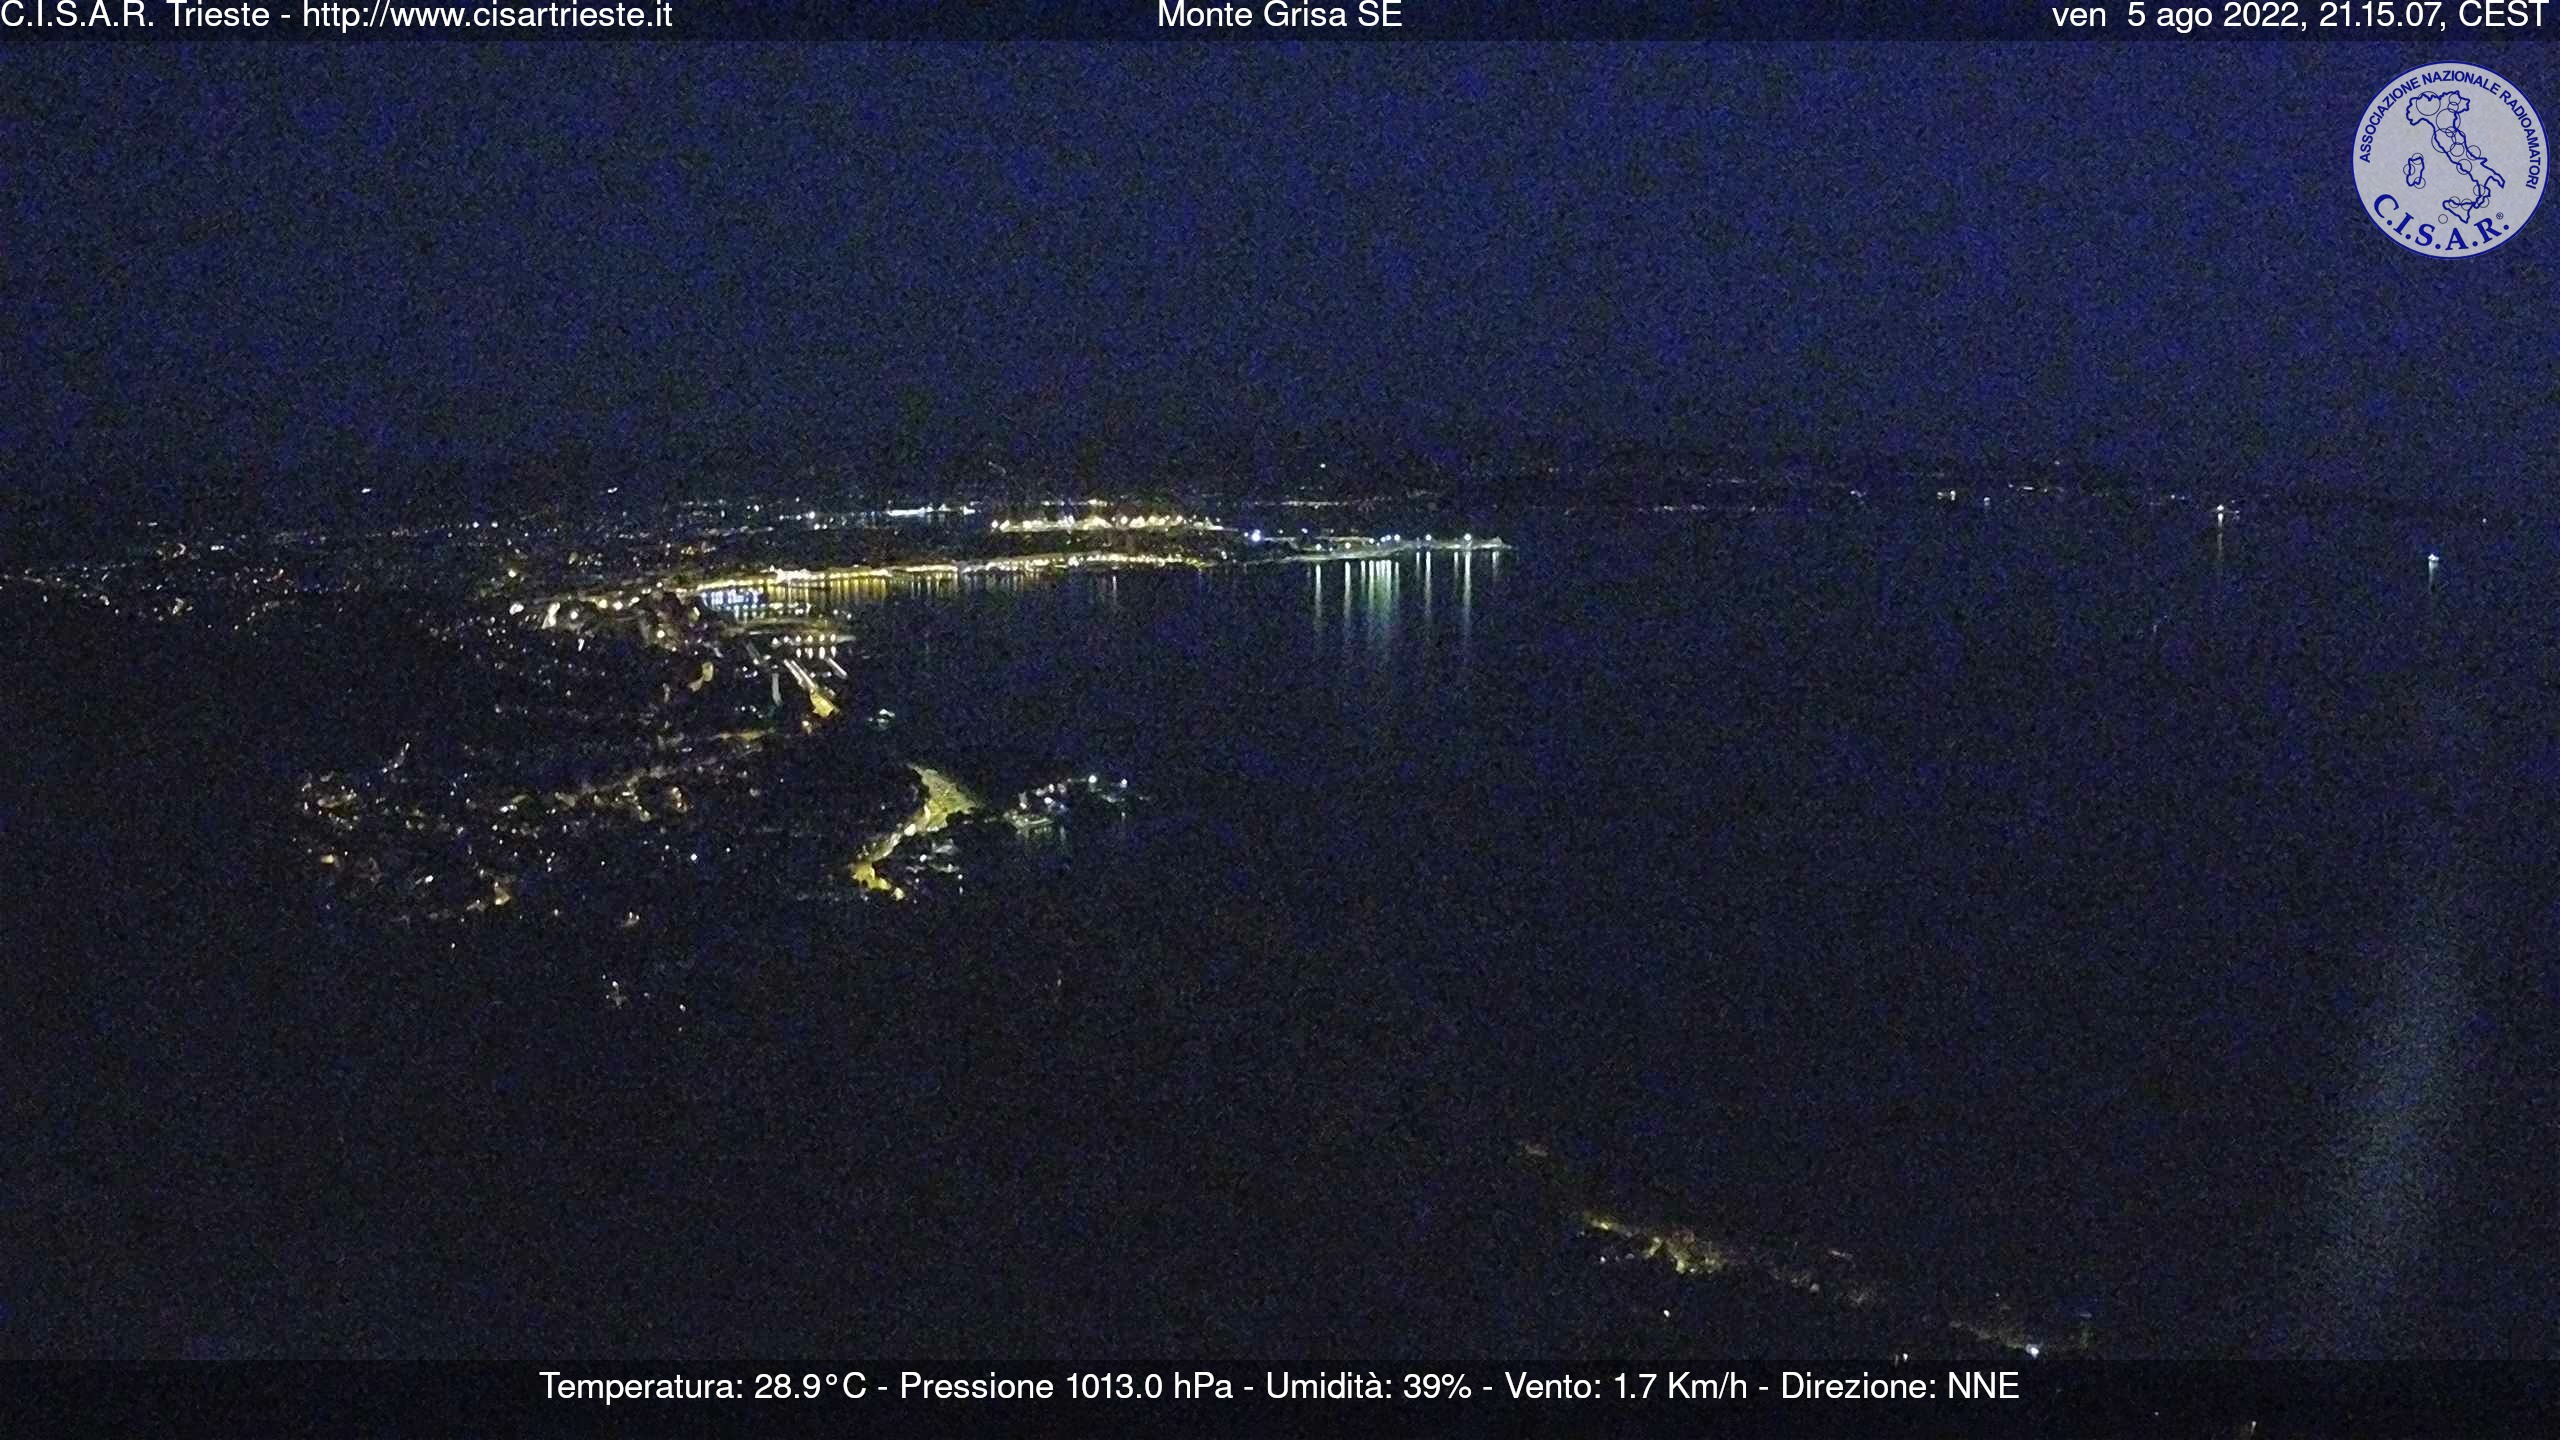 Webcam M. Grisa